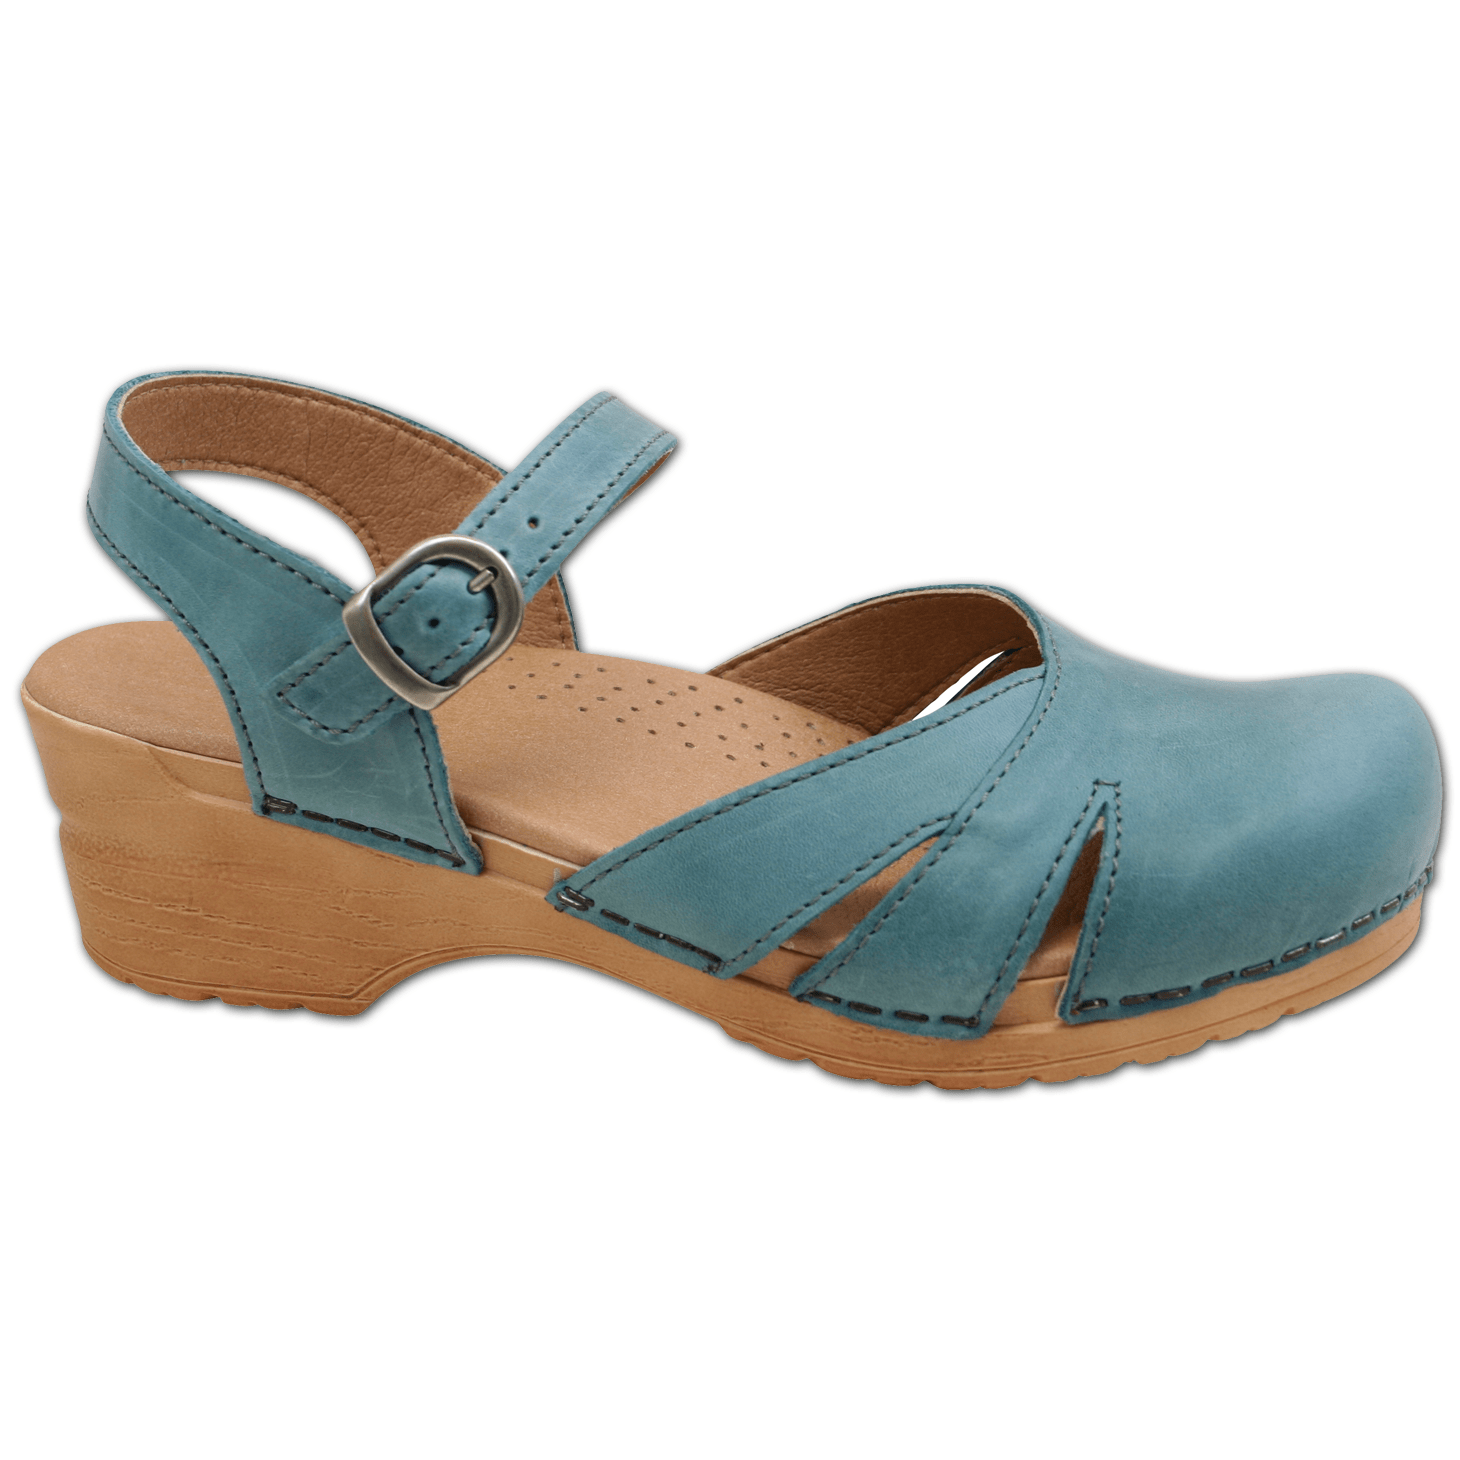 Sanita Margrethe Women's in Petrol Sandal